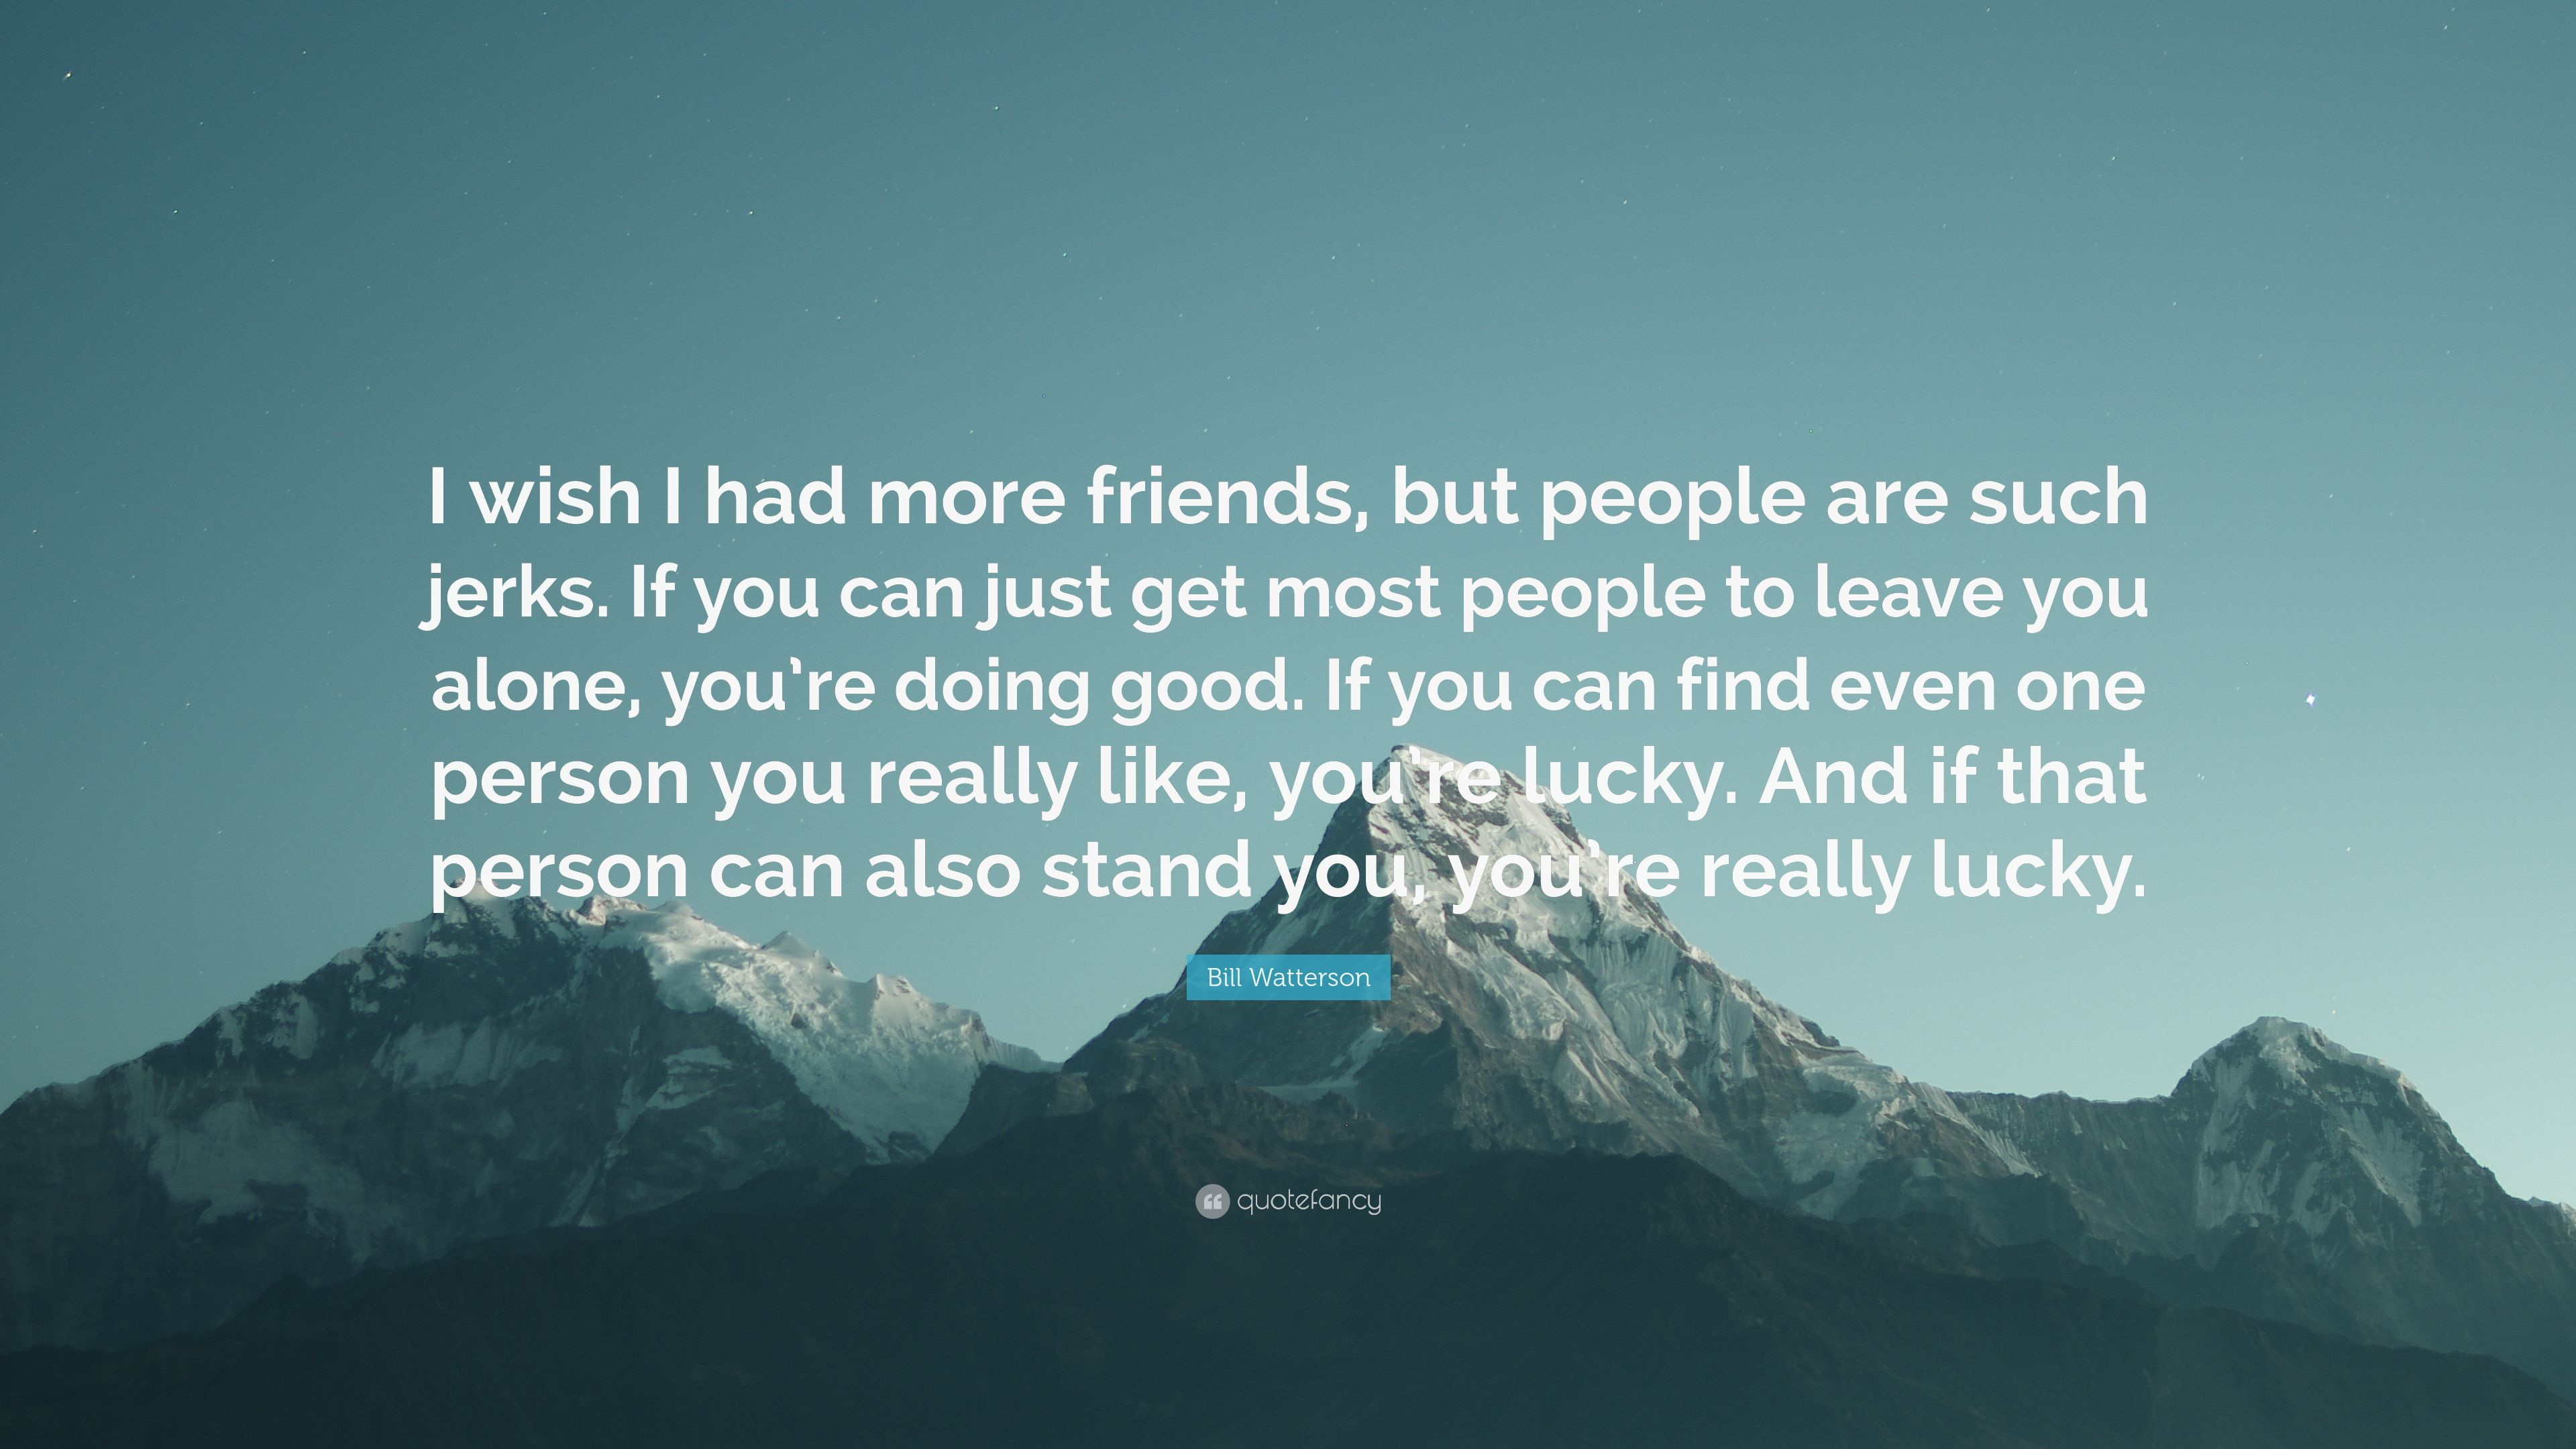 bill watterson quote i wish i had more friends but people are